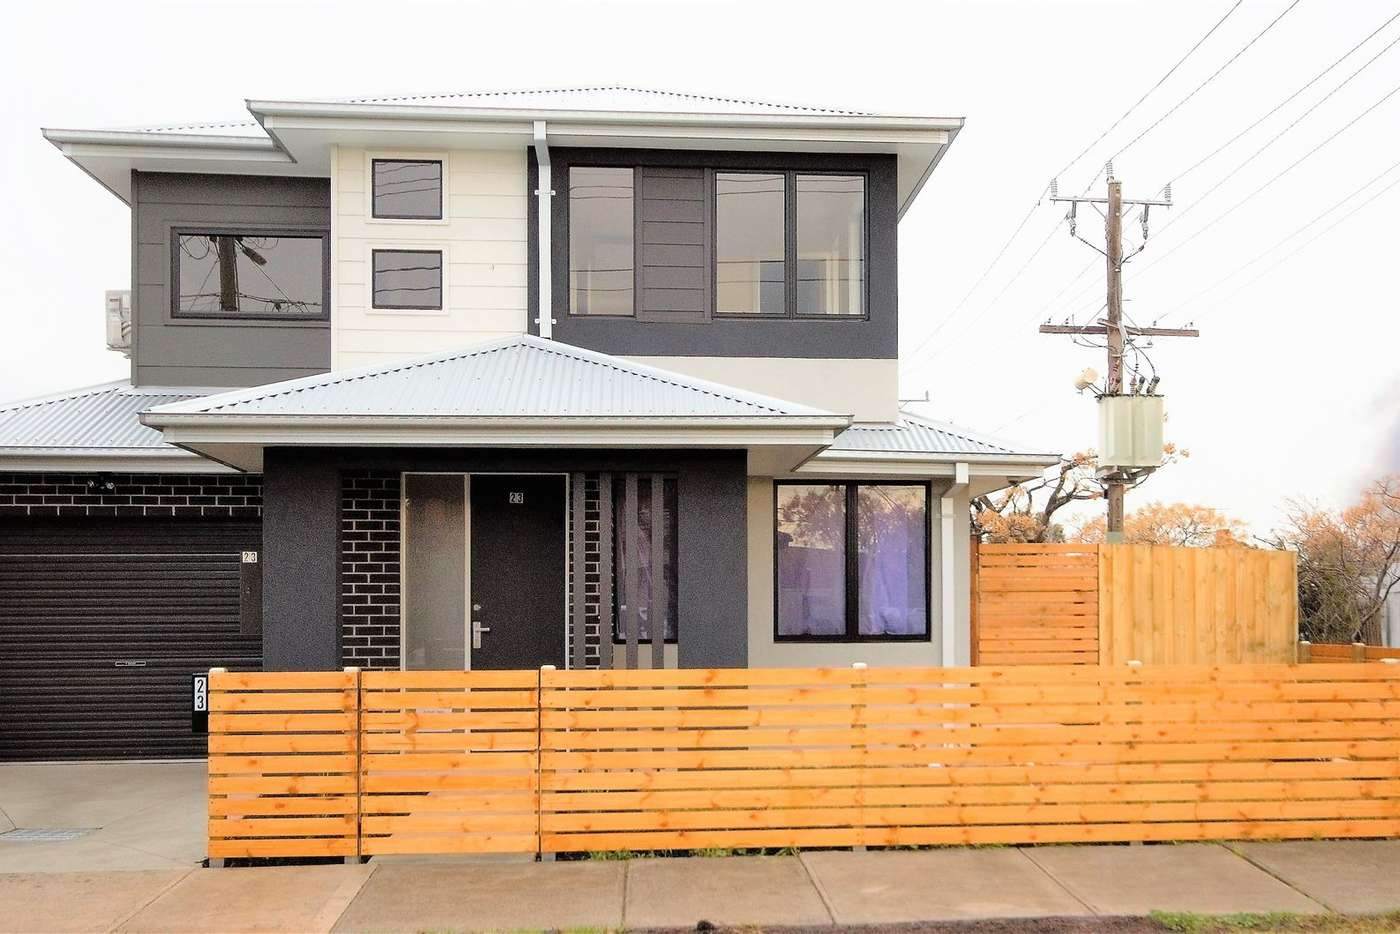 Main view of Homely townhouse listing, 23 Fontein St, West Footscray VIC 3012